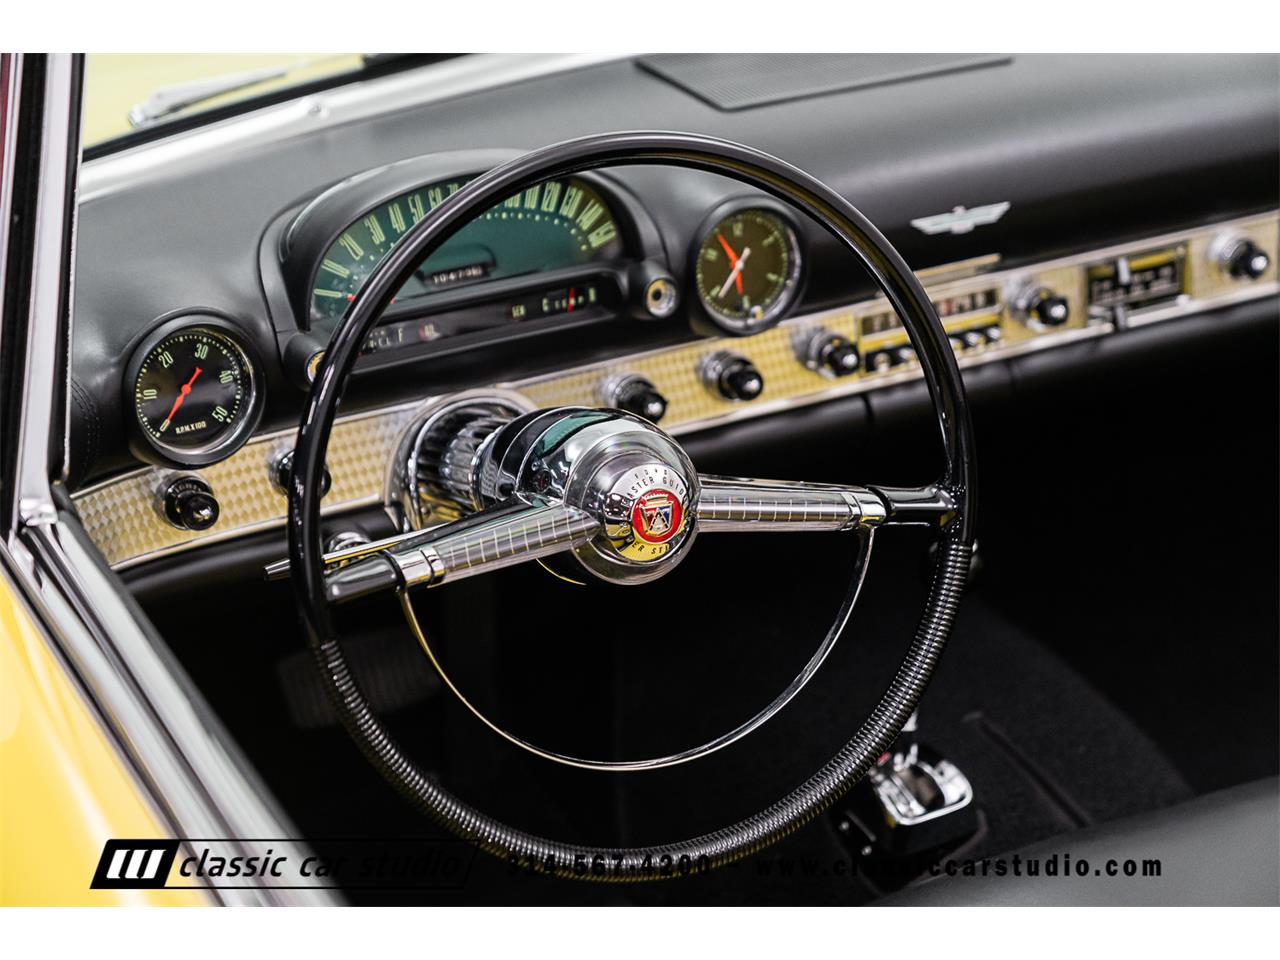 Large Picture of 1955 Ford Thunderbird Auction Vehicle Offered by Classic Car Studio - PKP1